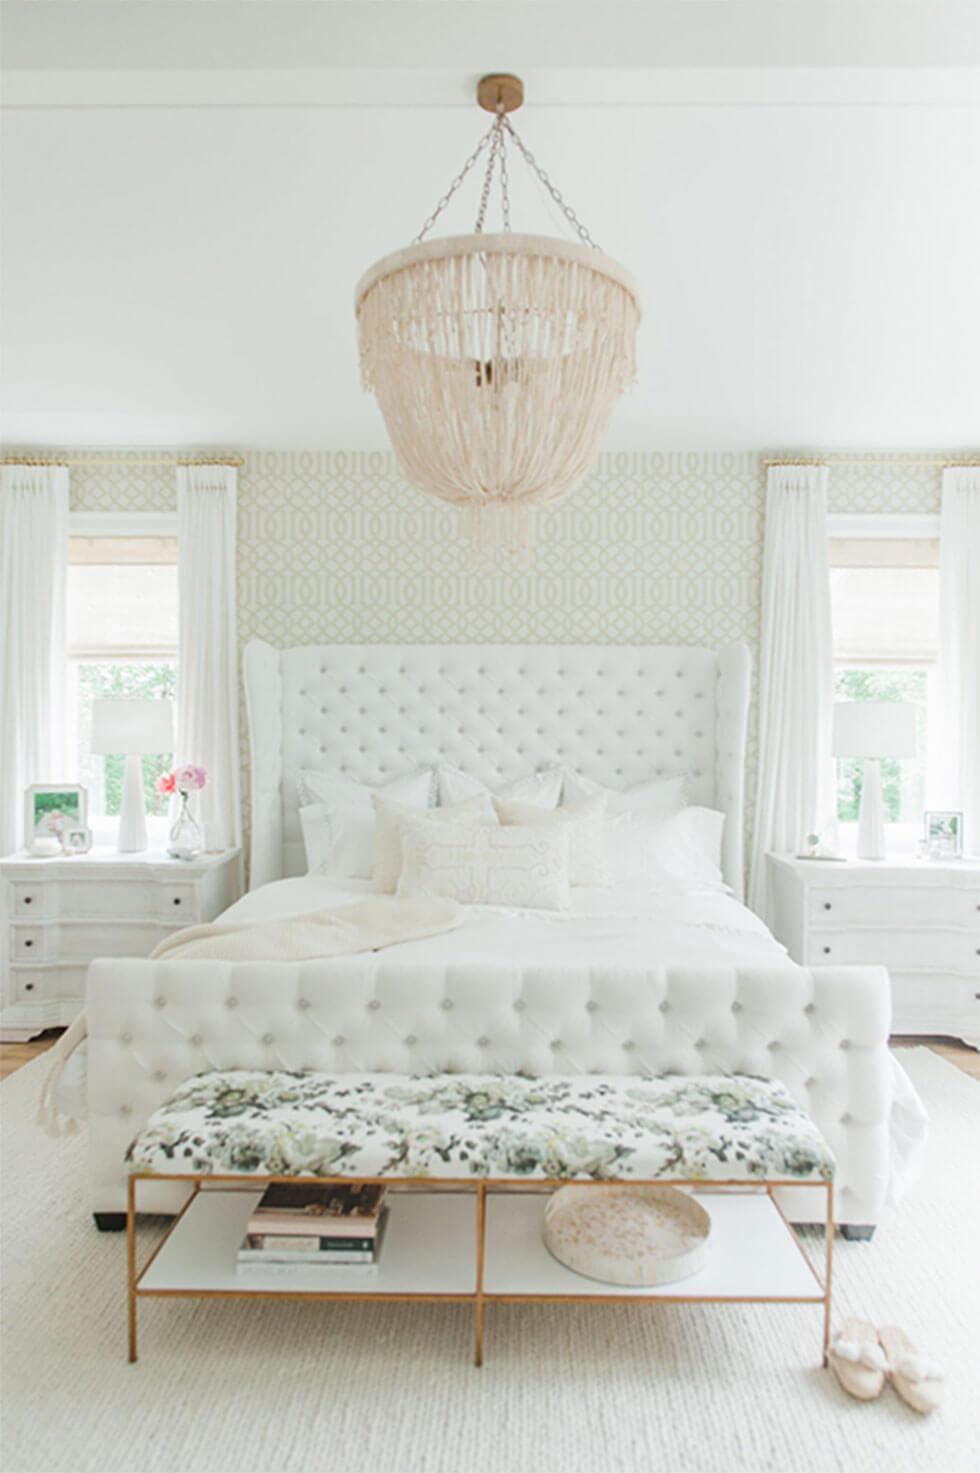 All-white bedroom with tufted headboard and beaded chandelier.